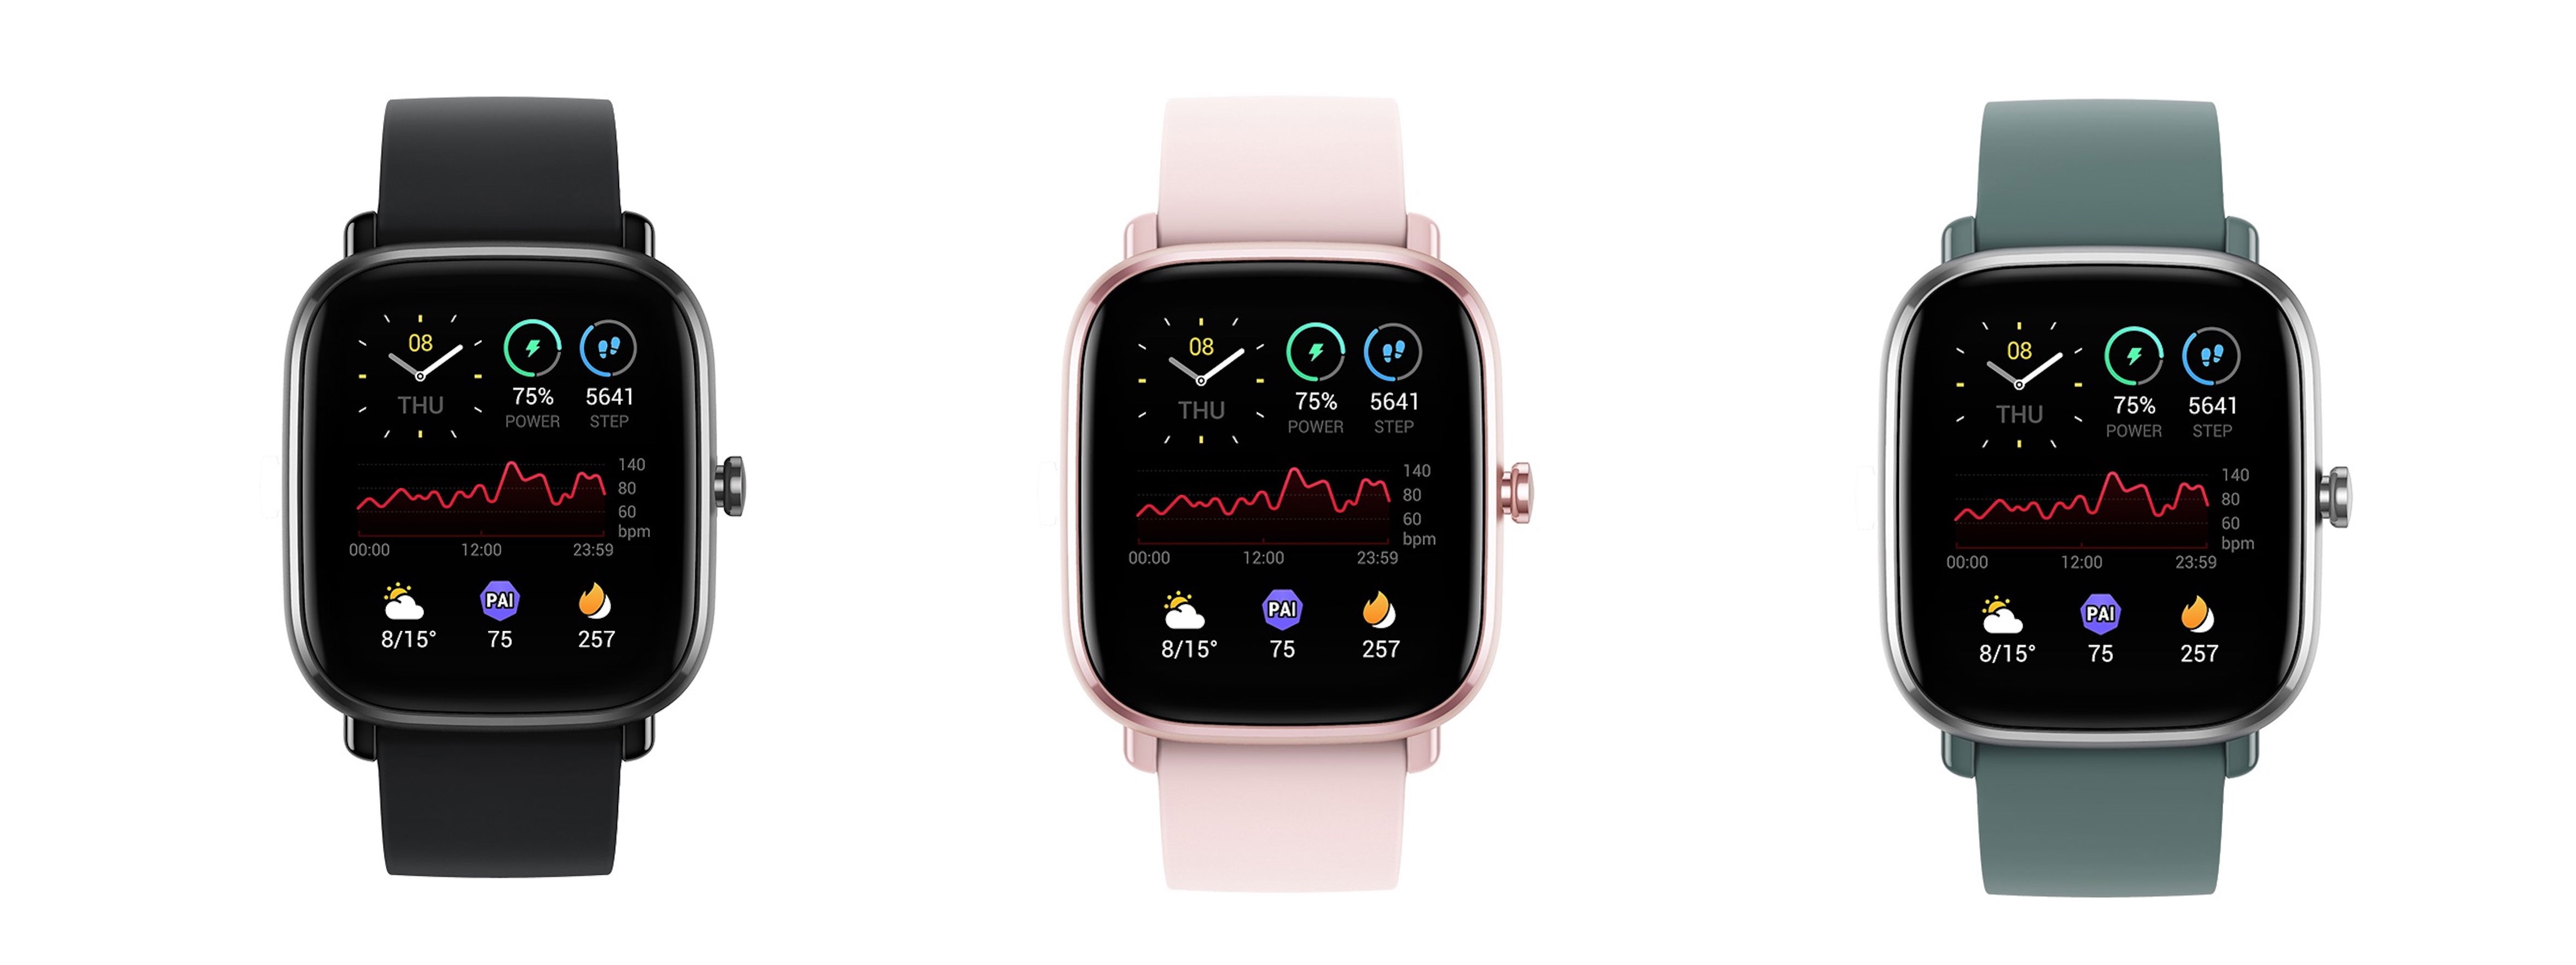 Amazfit and Zepp Ranked in the Top 4 in Global Adult Smartwatch Shipments and fastest growing smartwatch brands in the UAE